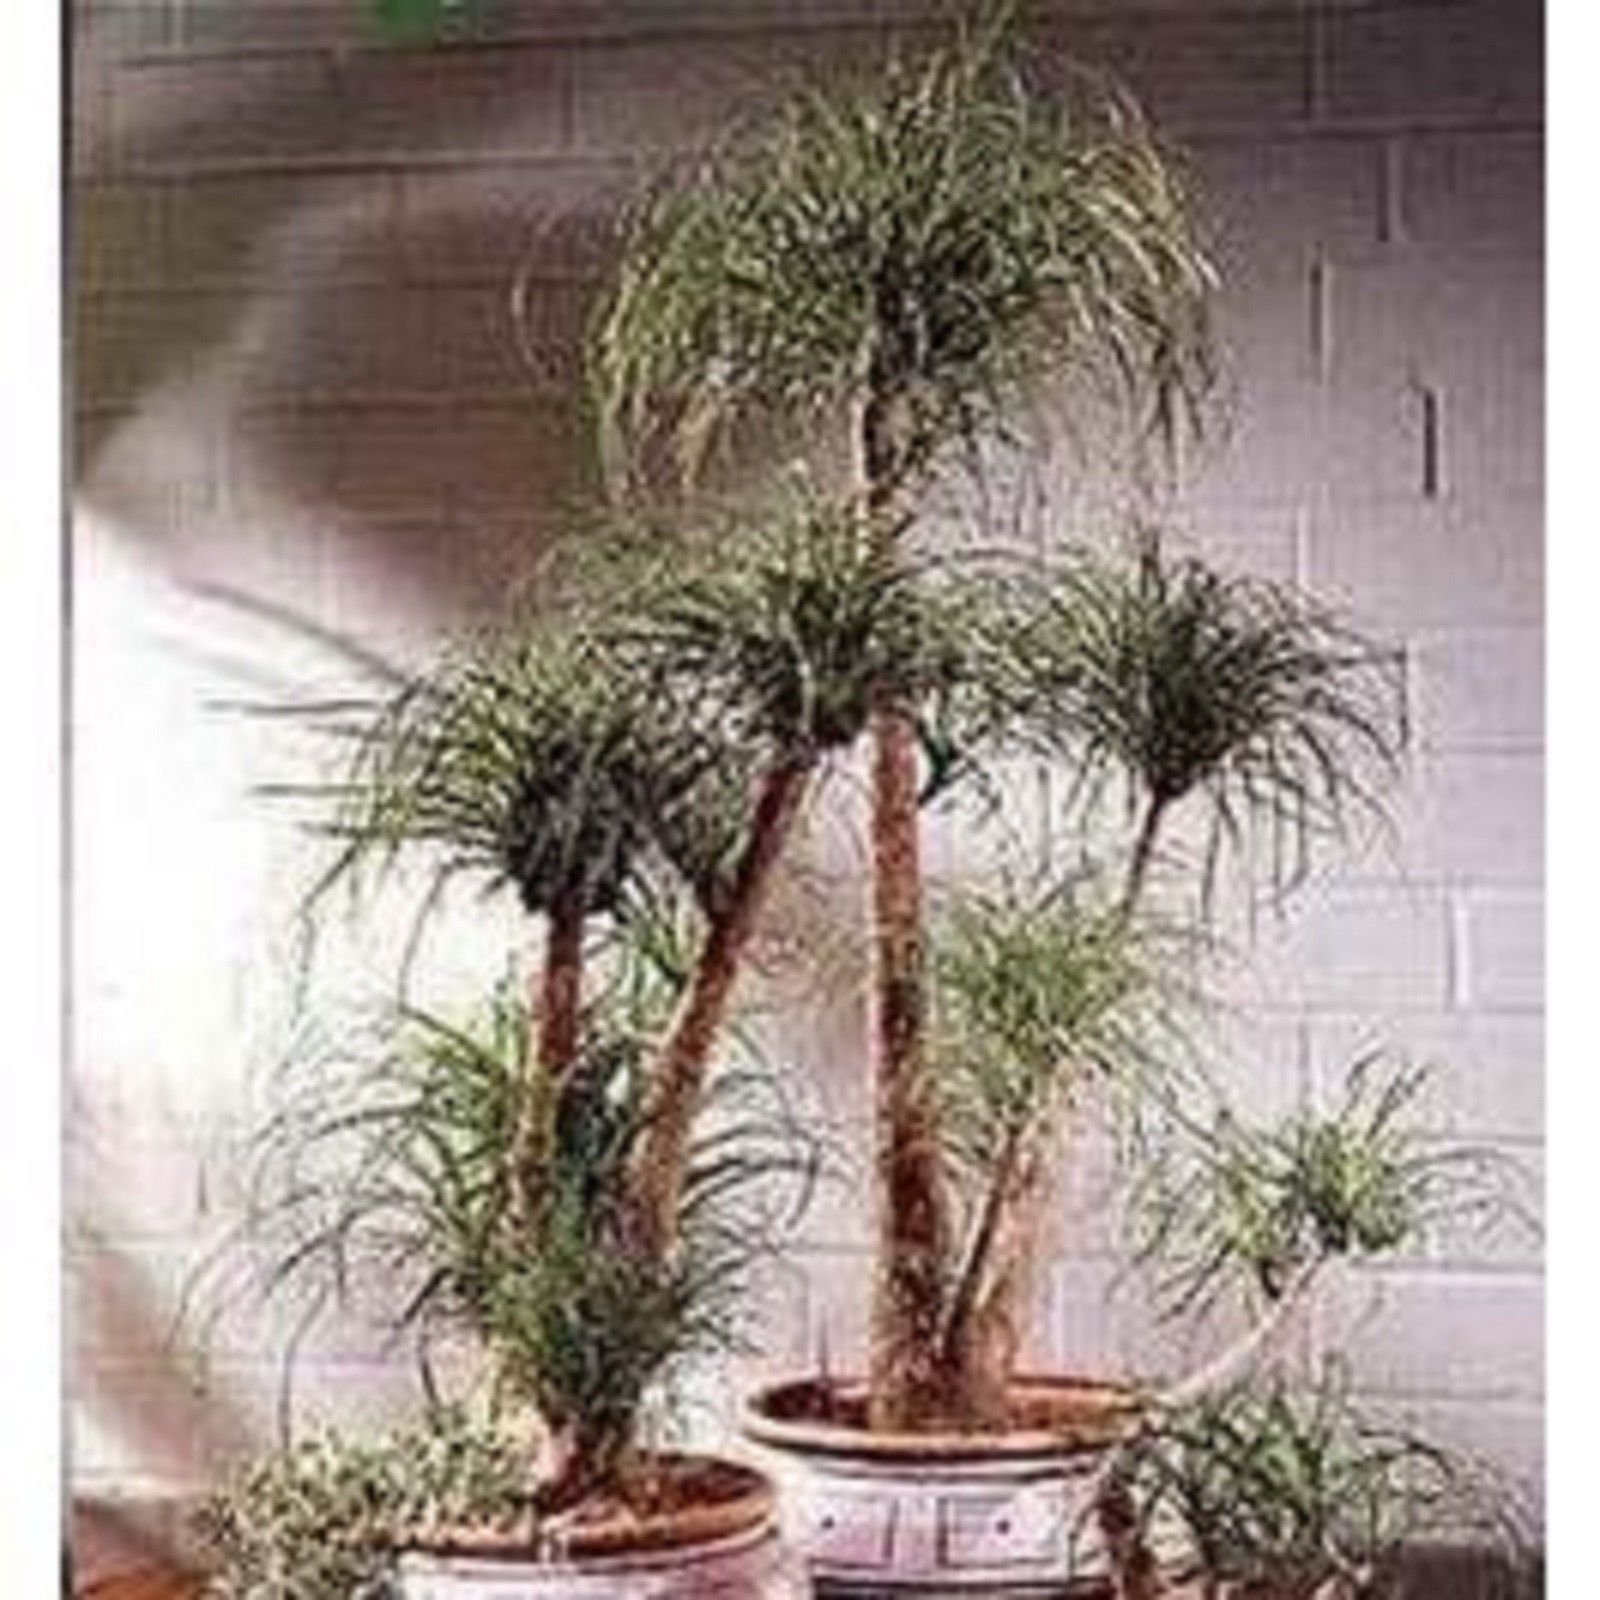 Ponytail Palm Cats